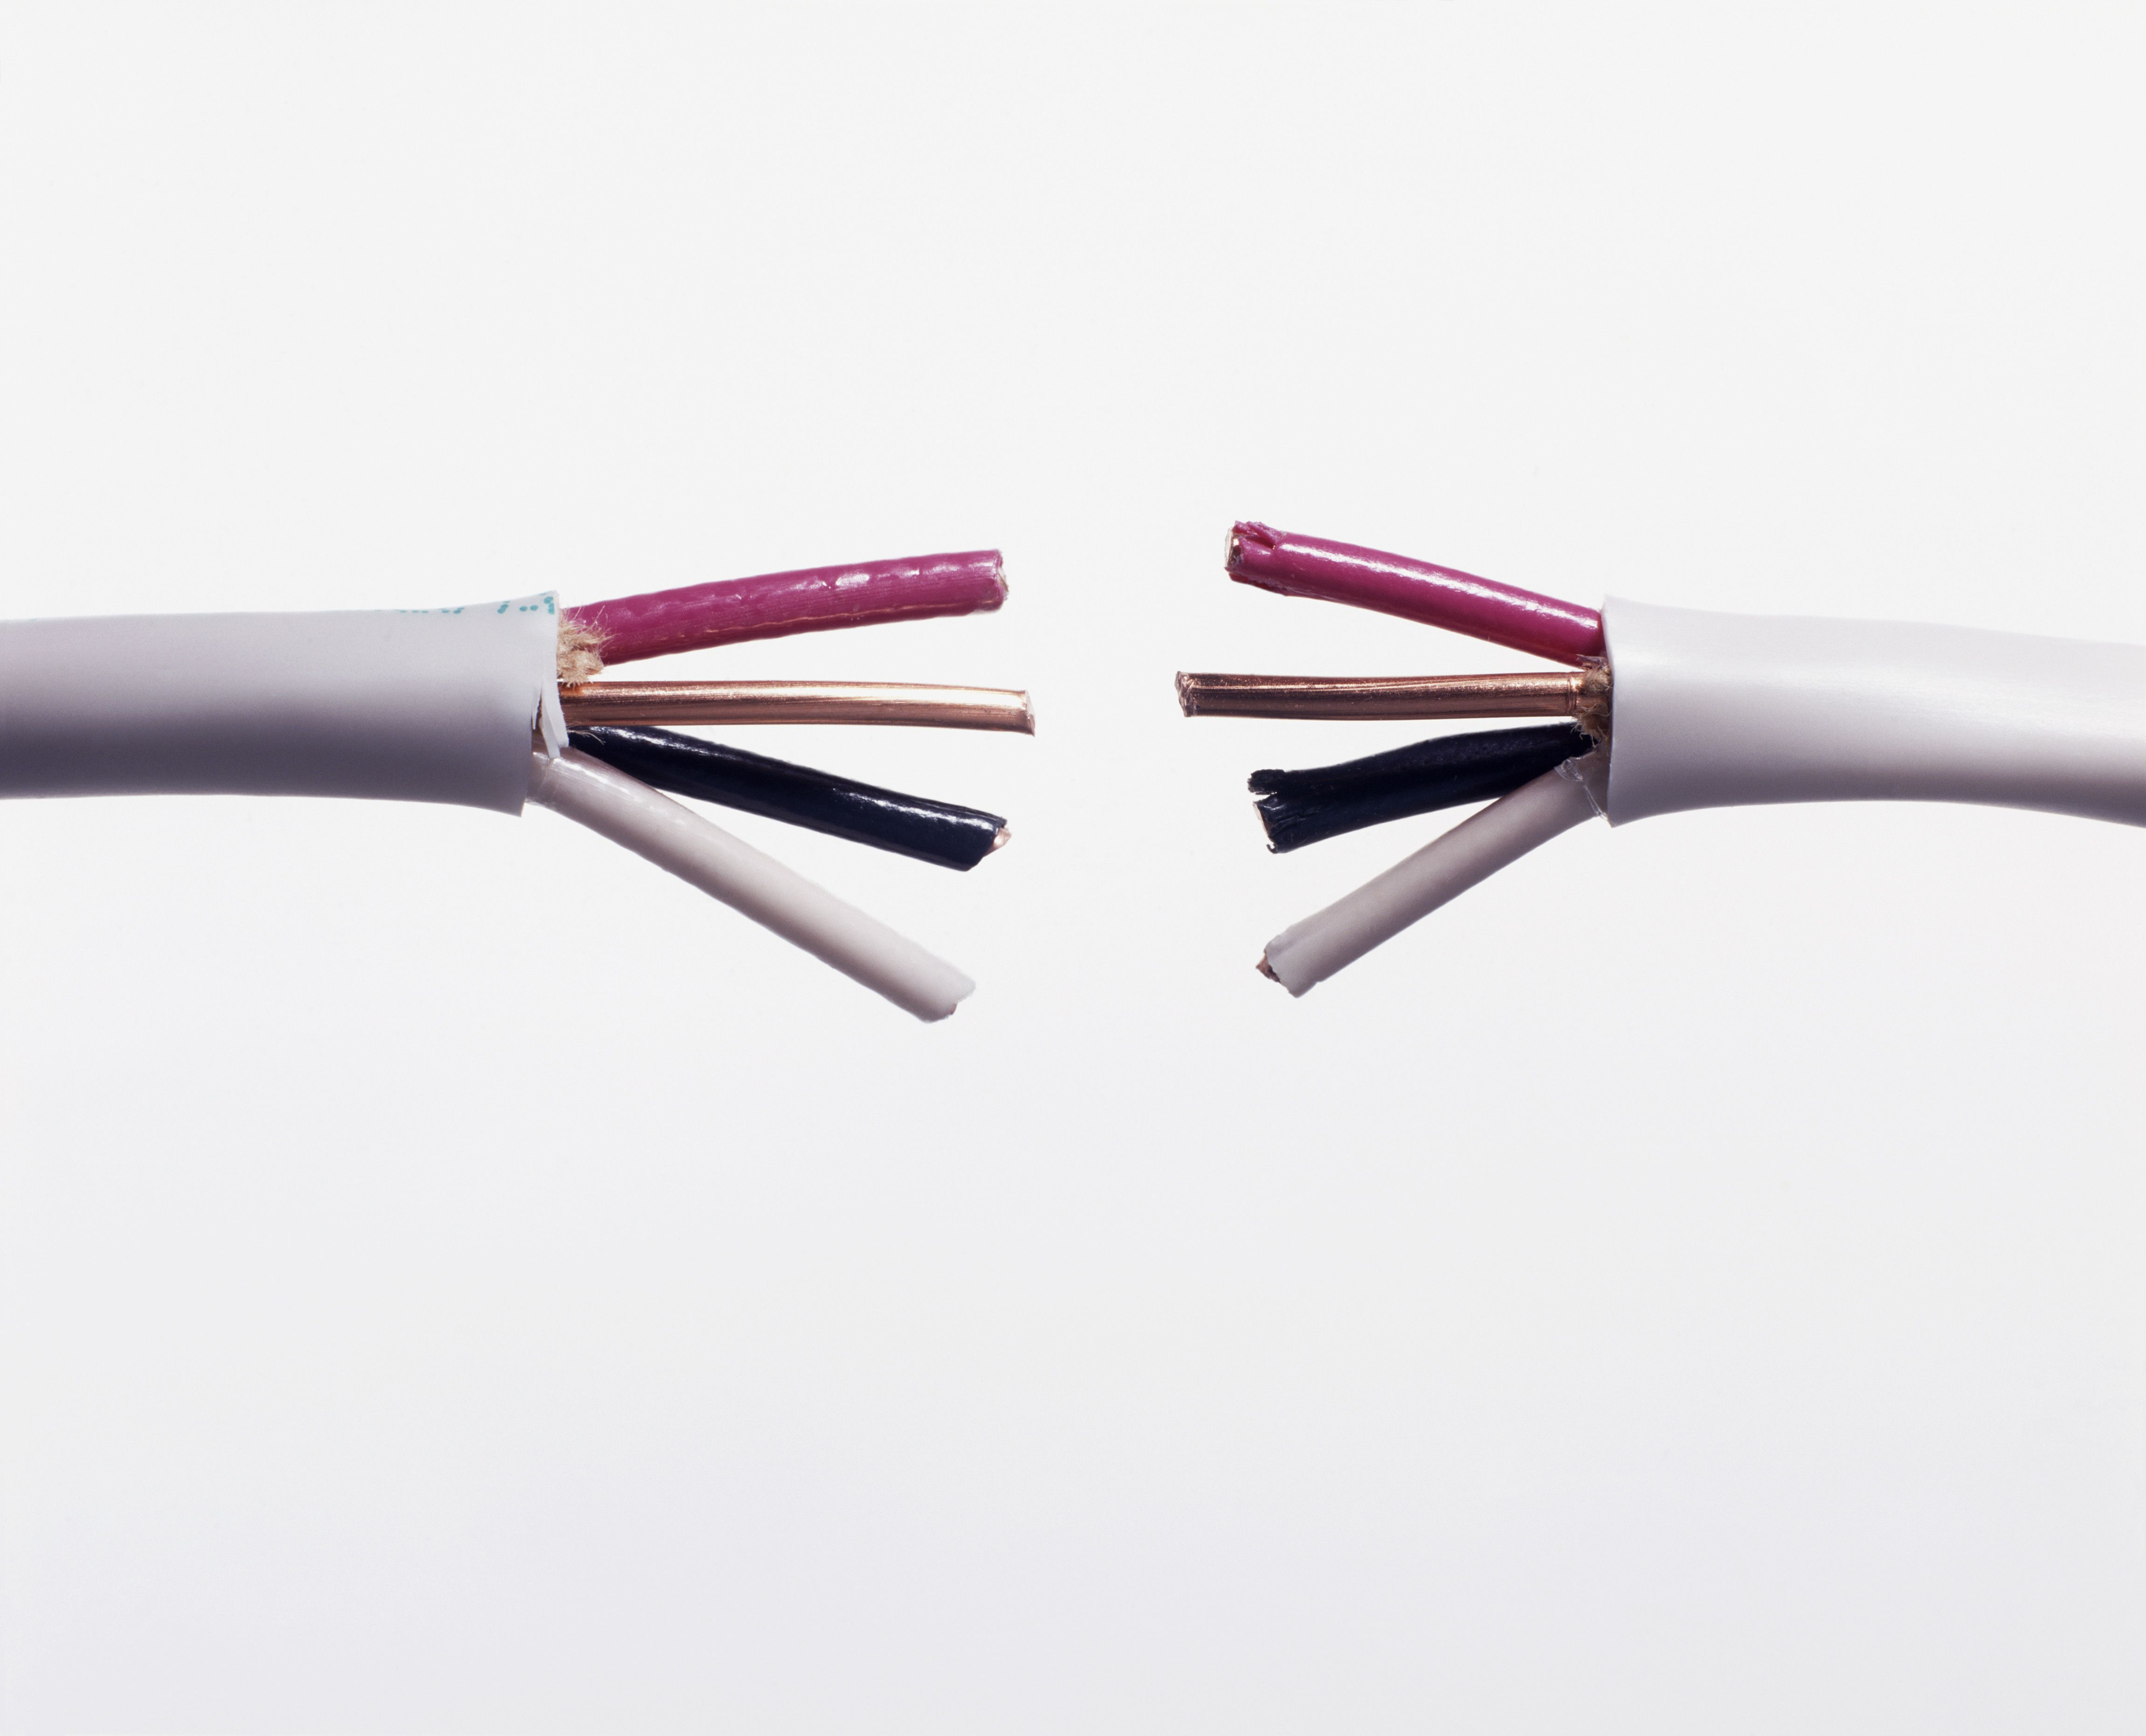 Color Coding of Nonmetallic (NM) Electrical Cable